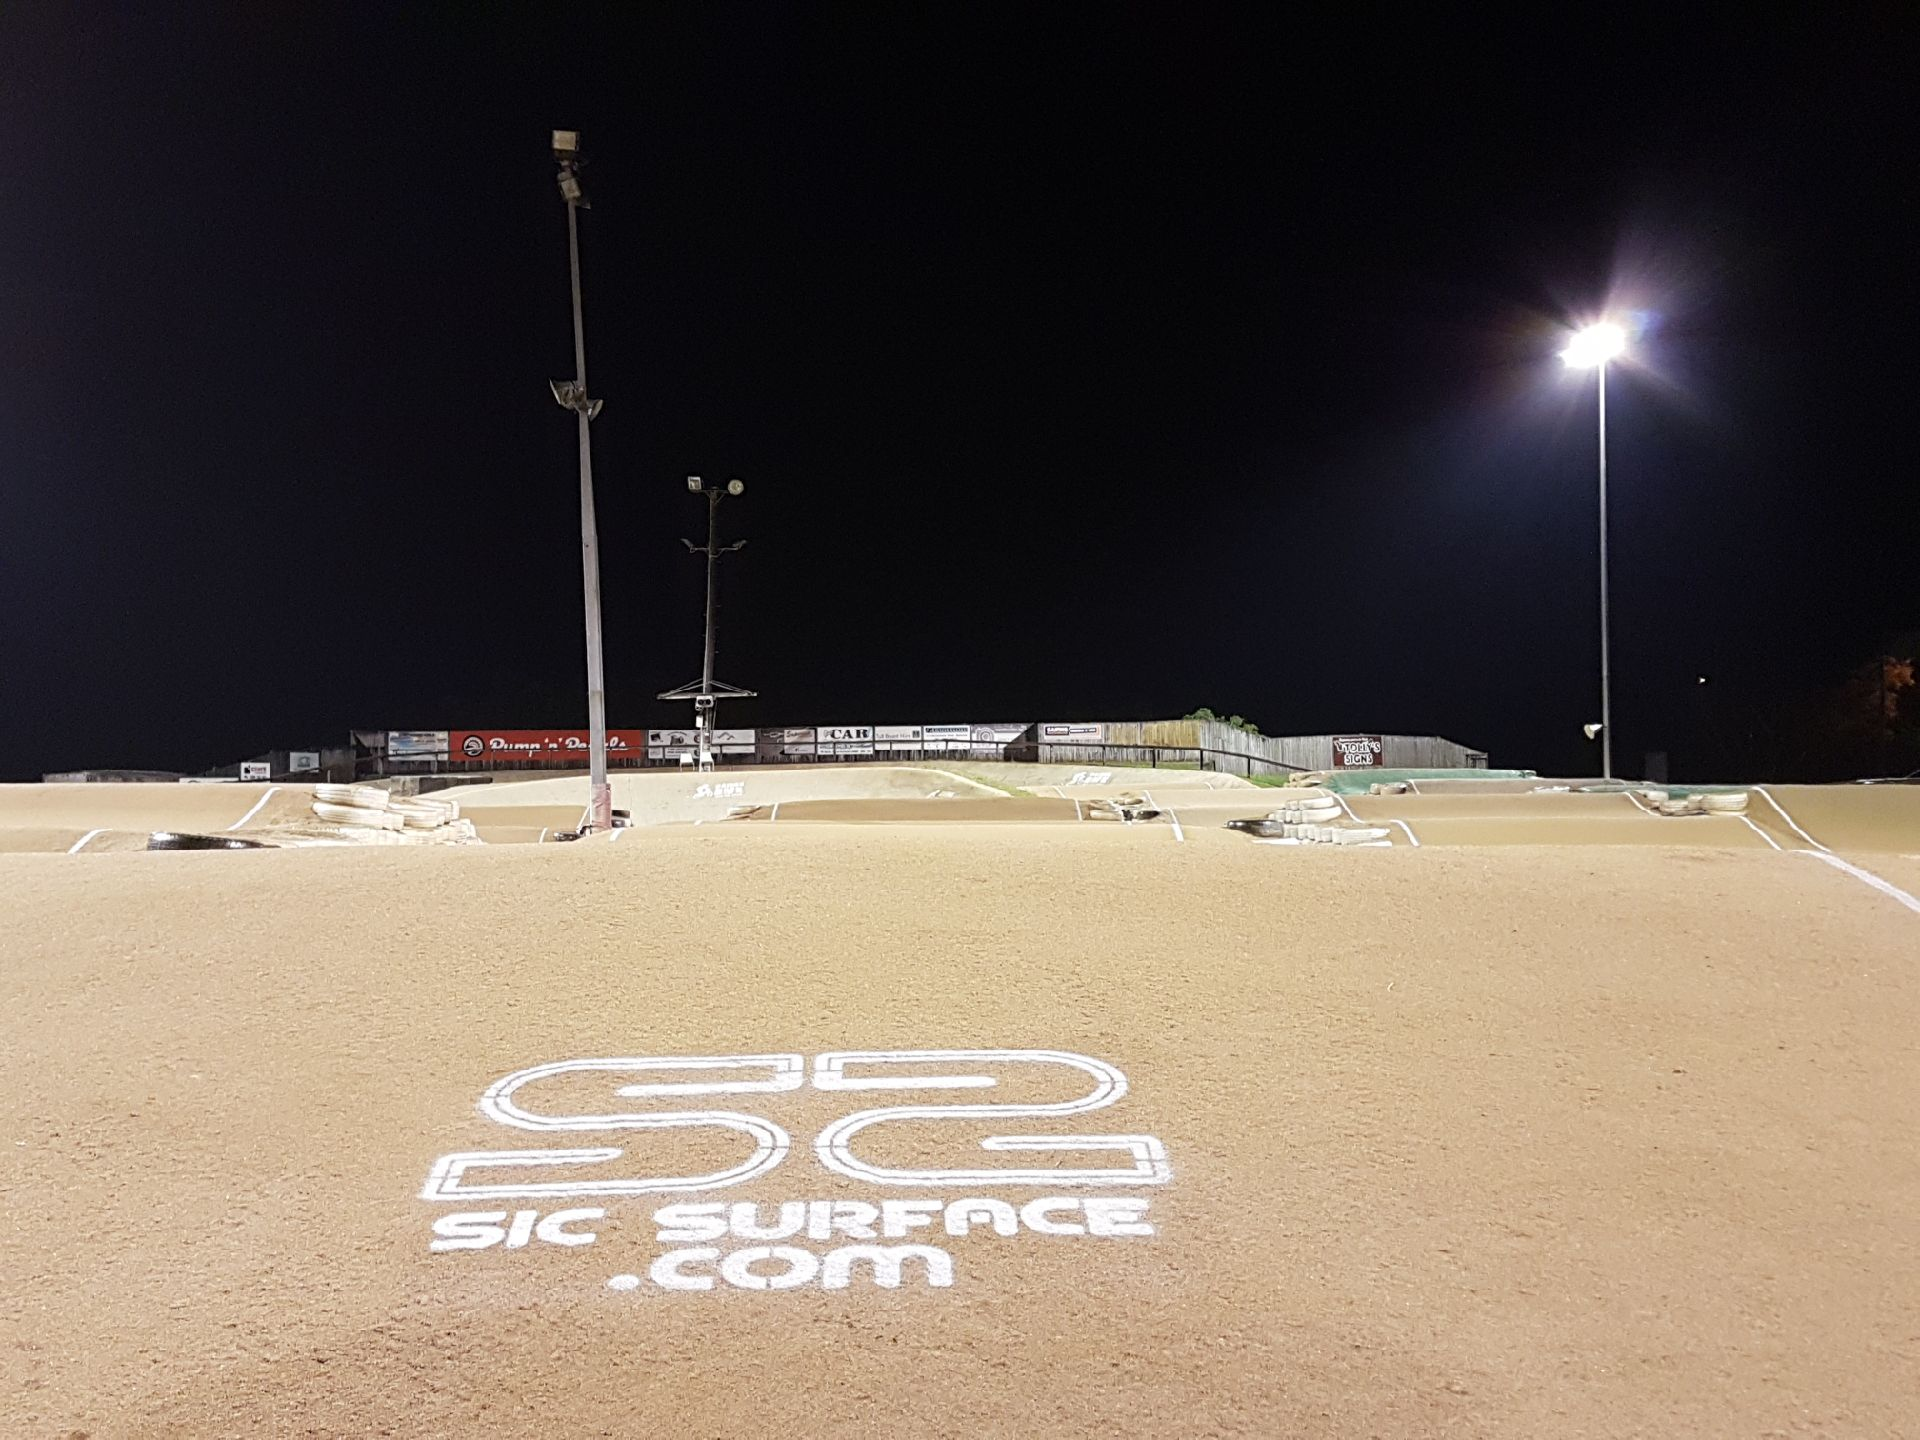 Weather proof BMX Track at Cairns Queensland Sic Surface.JPG